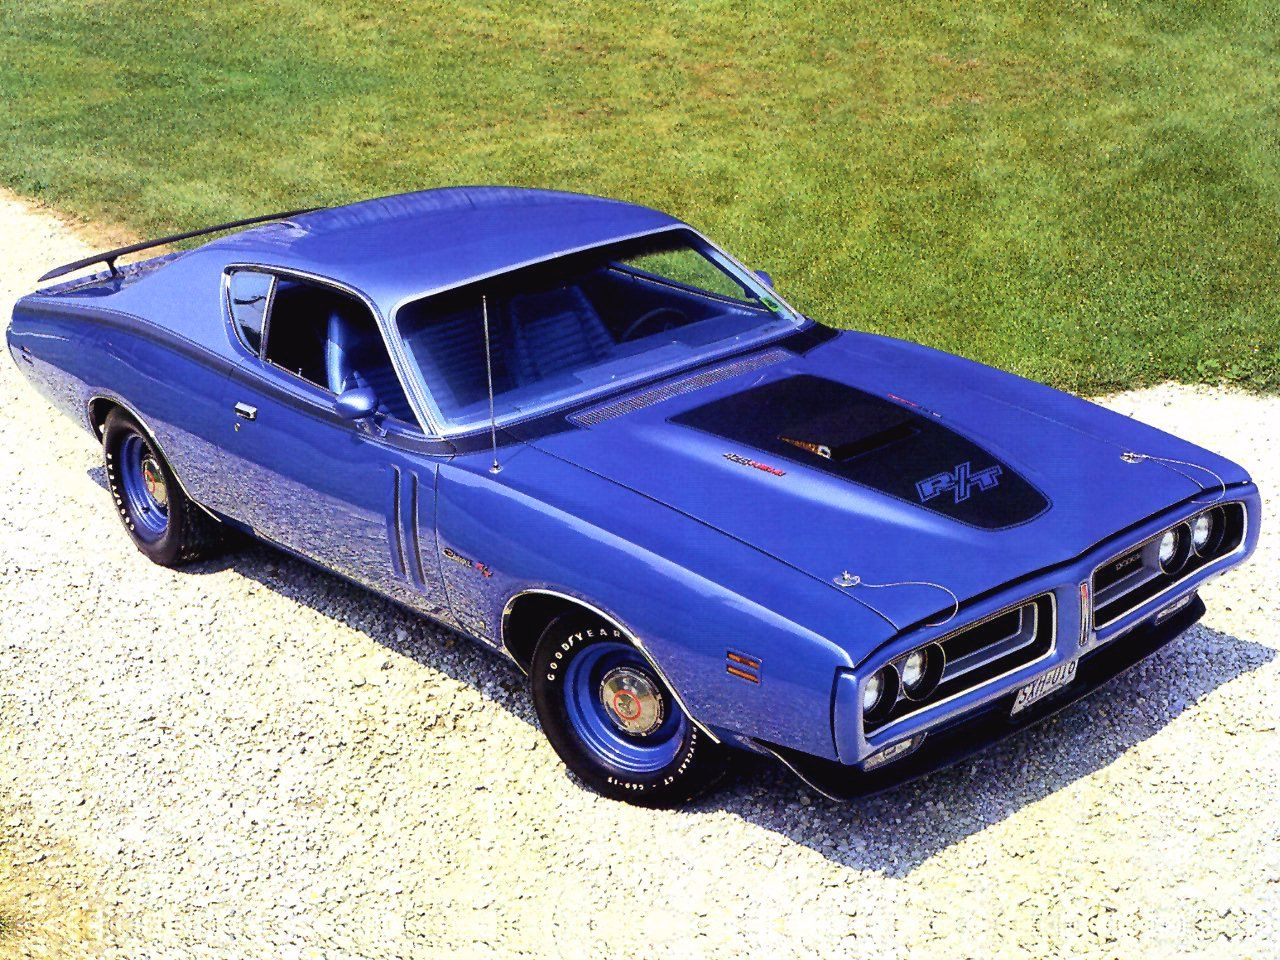 1971 Dodge Charger. Charger, Find parts for this classic